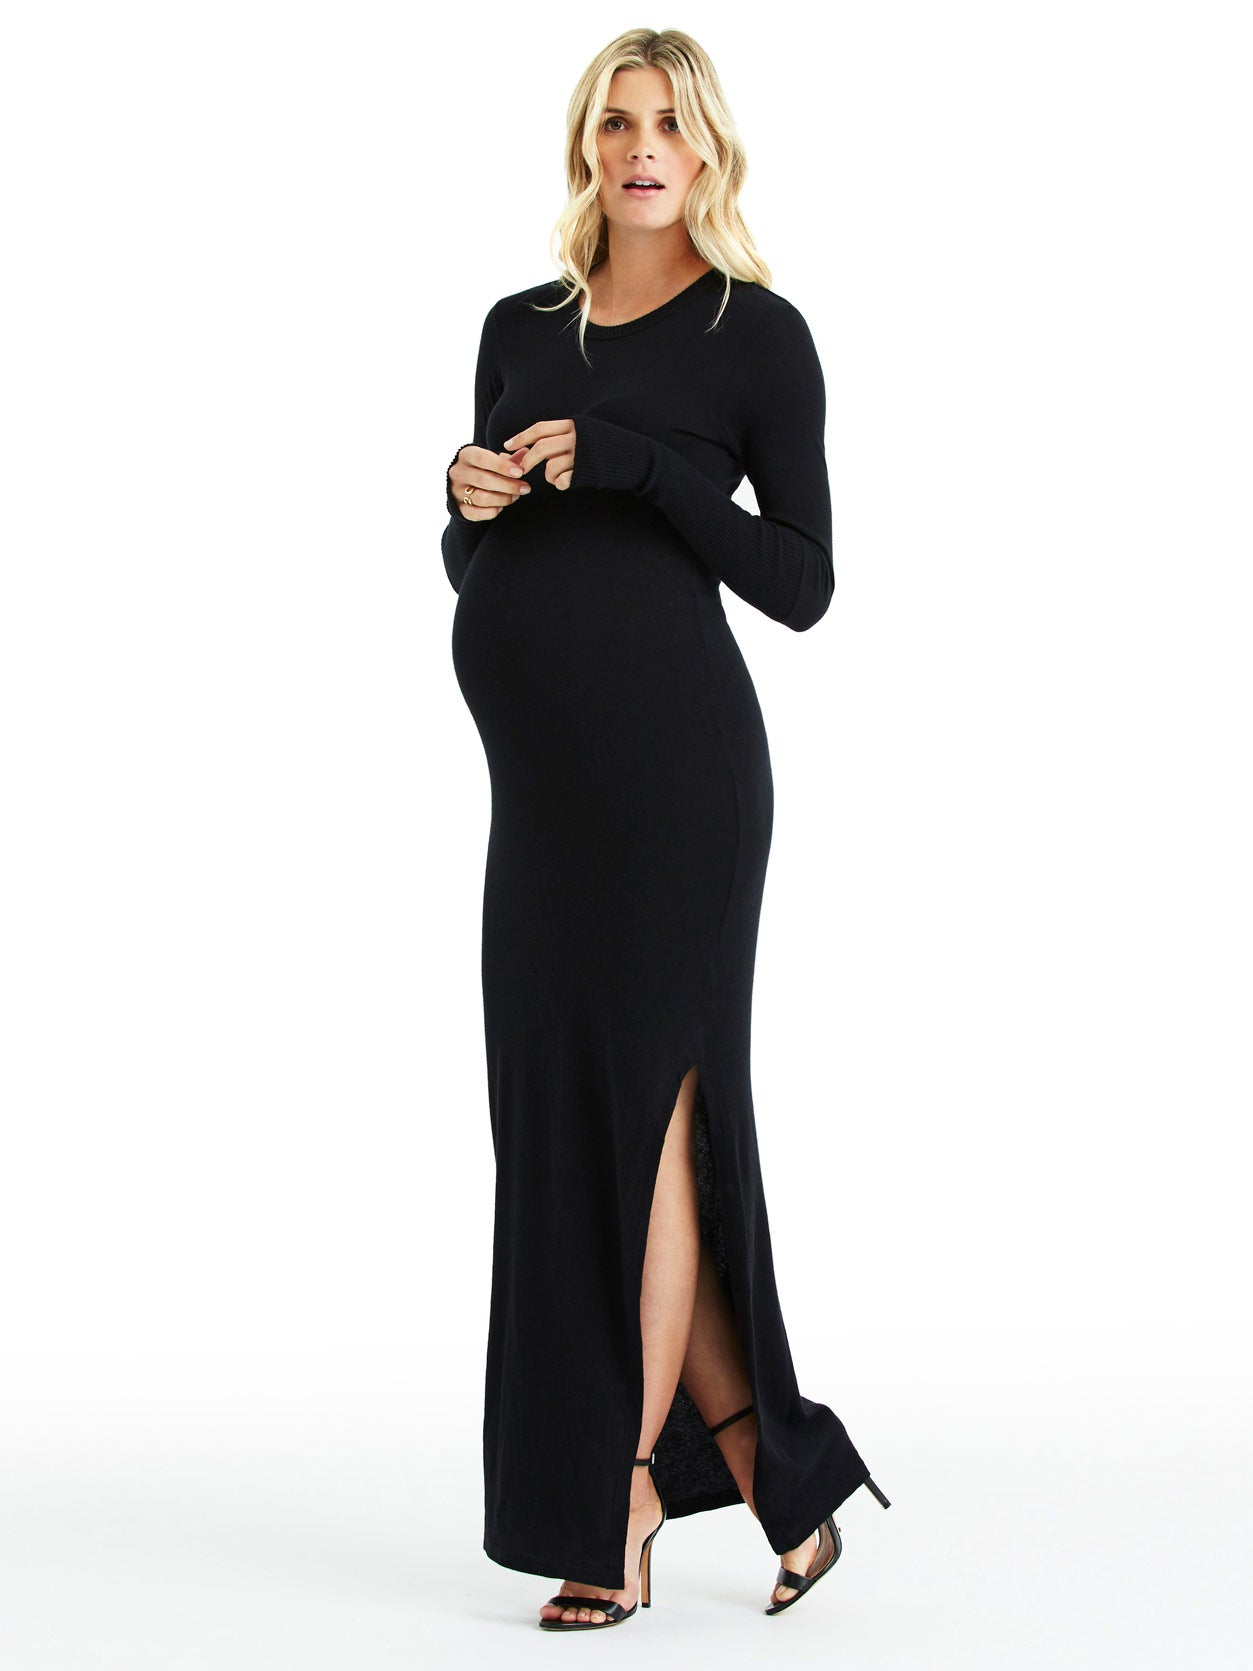 TILDEN | Enza Costa Long Sleeve Slit Maxi Dress